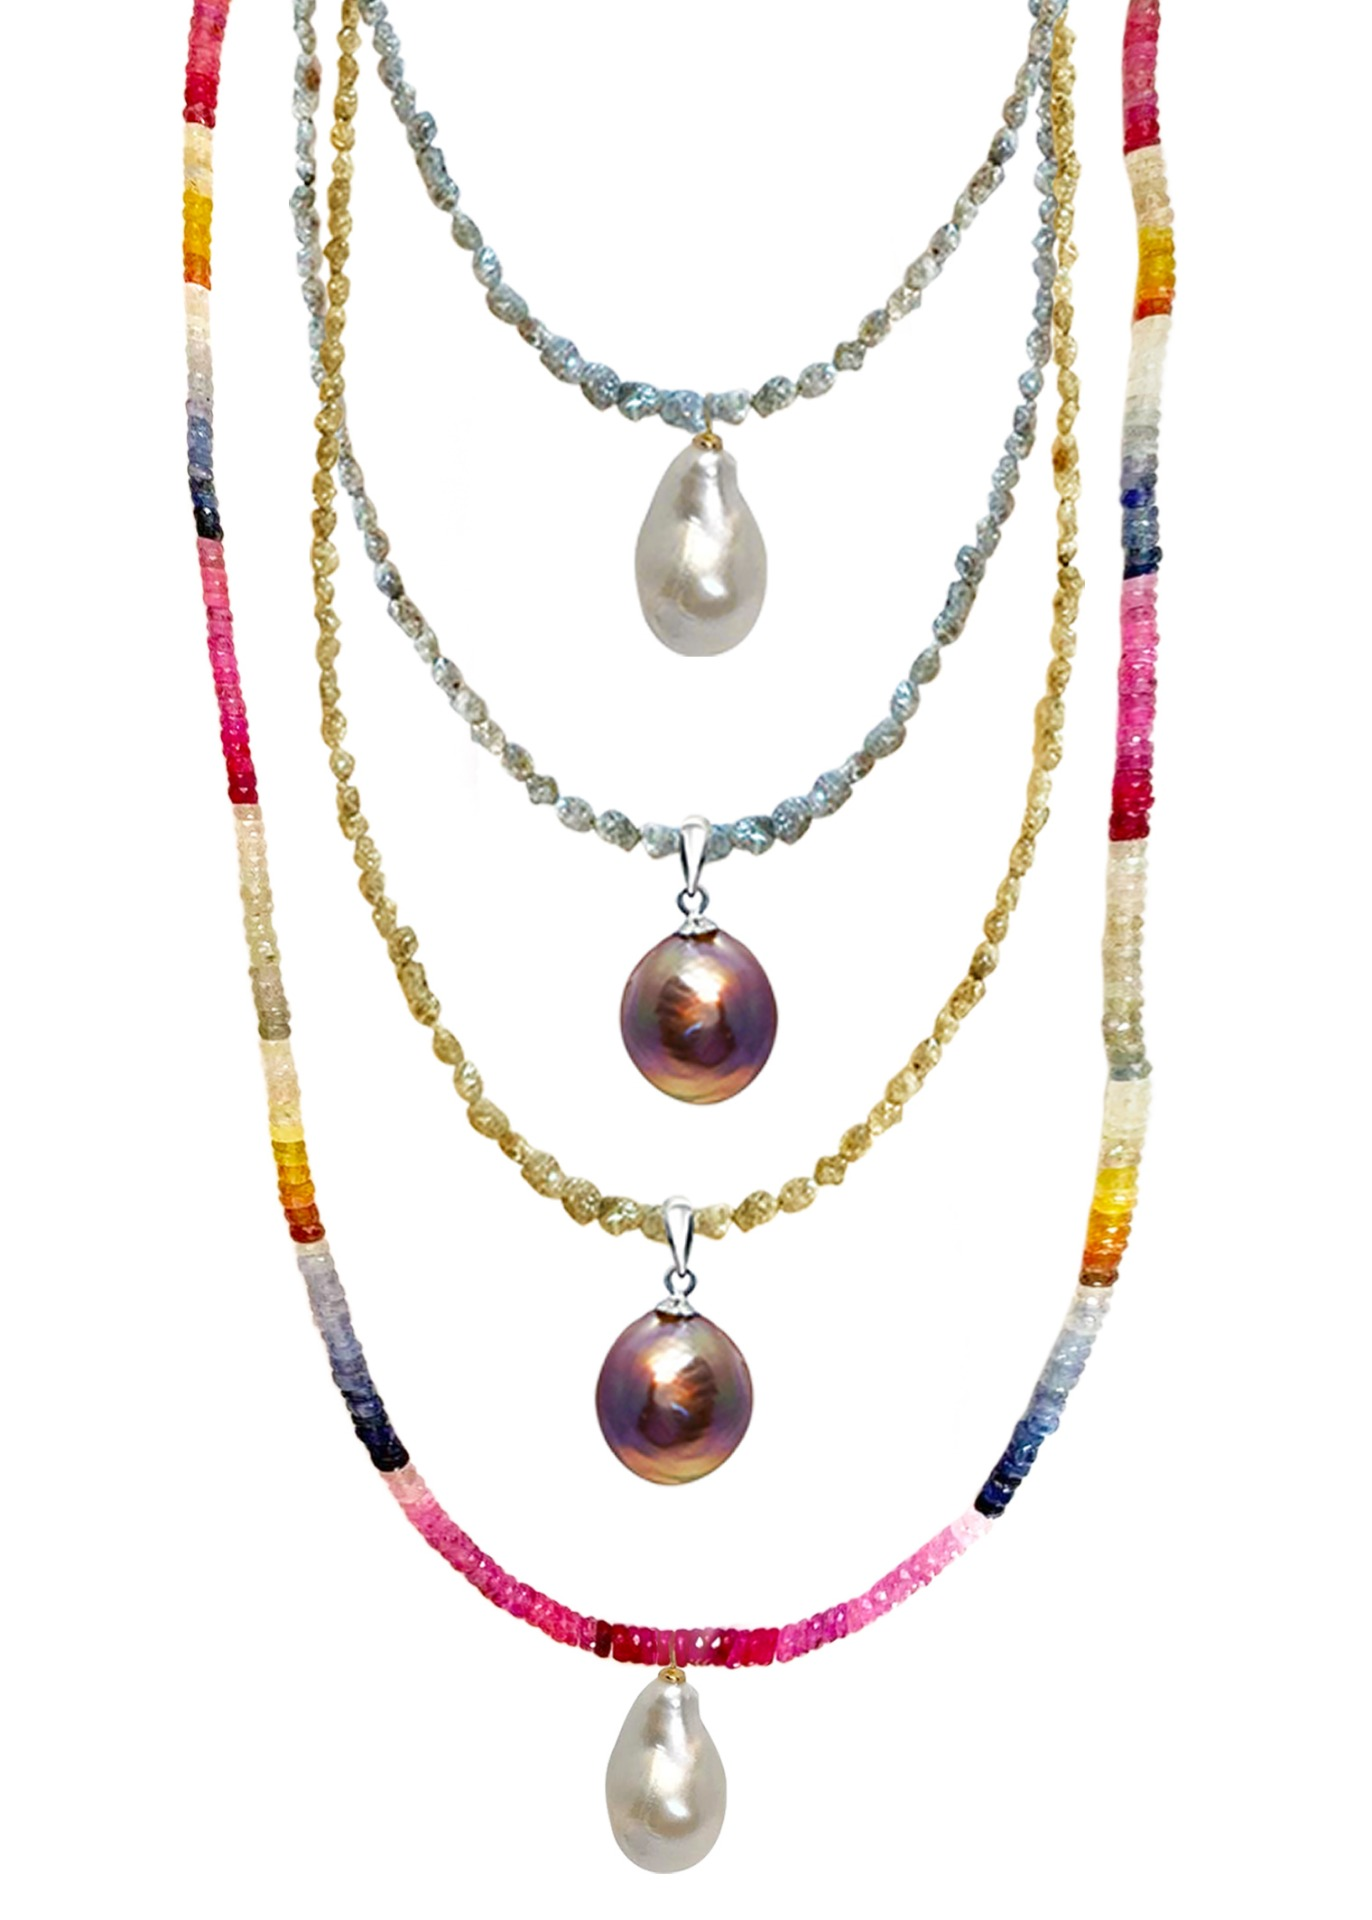 diamond-and-pearl-jewellery-banner3.jpg